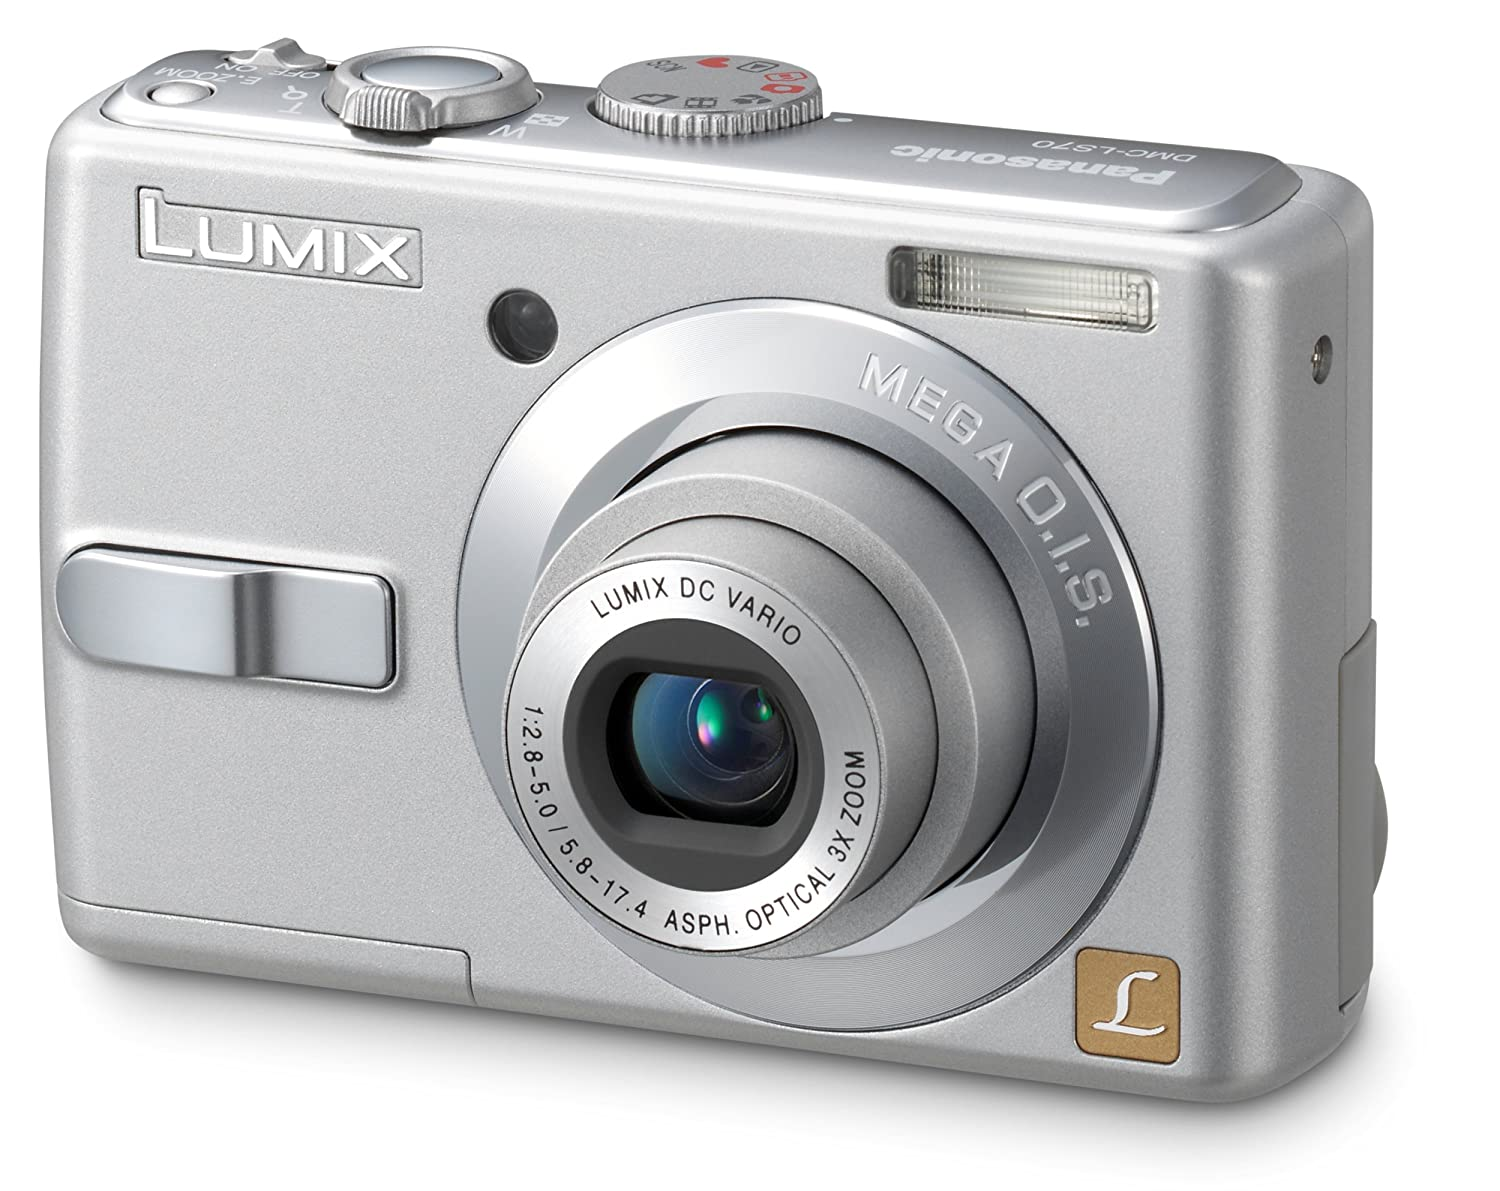 Amazon.com : Panasonic Lumix DMC-LS70S 7MP Digital Camera with 3x Image  Stabilized Zoom : Point And Shoot Digital Cameras : Camera & Photo